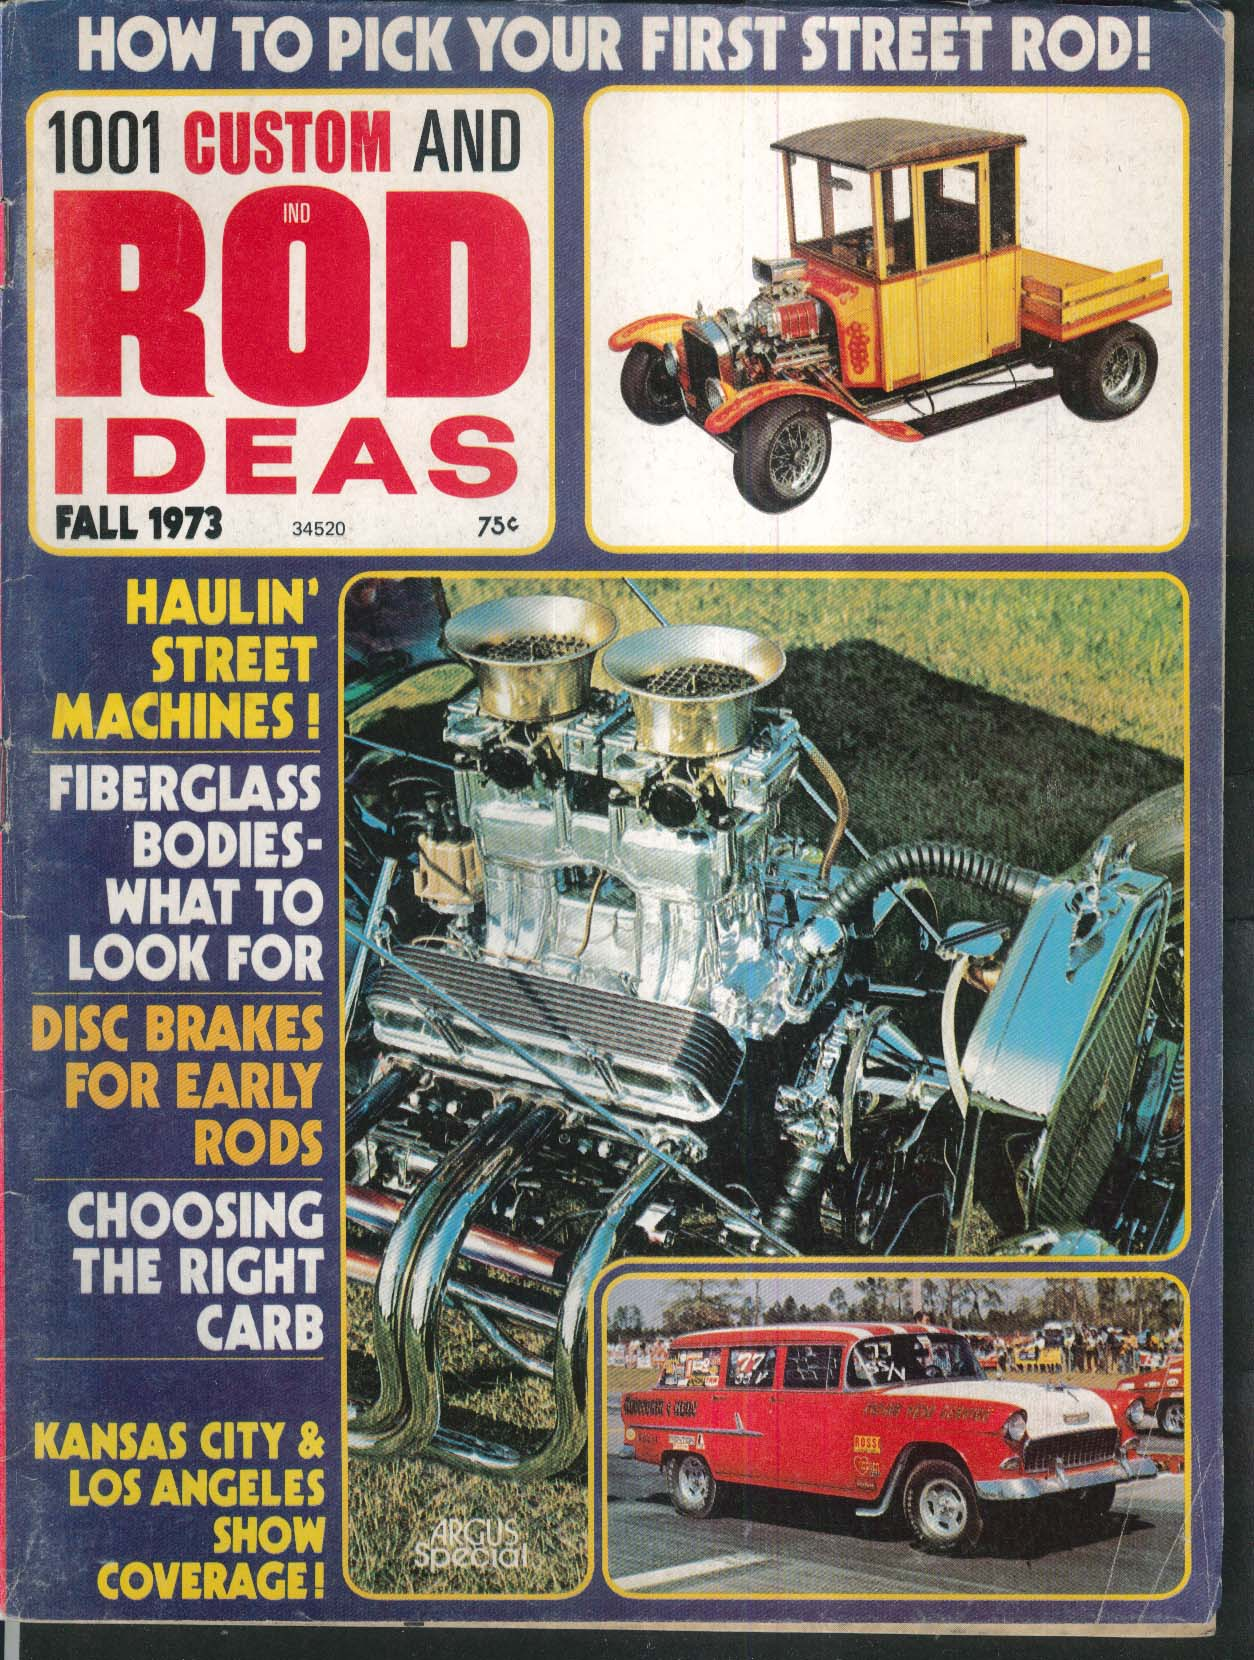 1001 CUSTOM & ROD IDEAS Jag v Corvette Suspension LA Roadster Show ++ Fall 1973